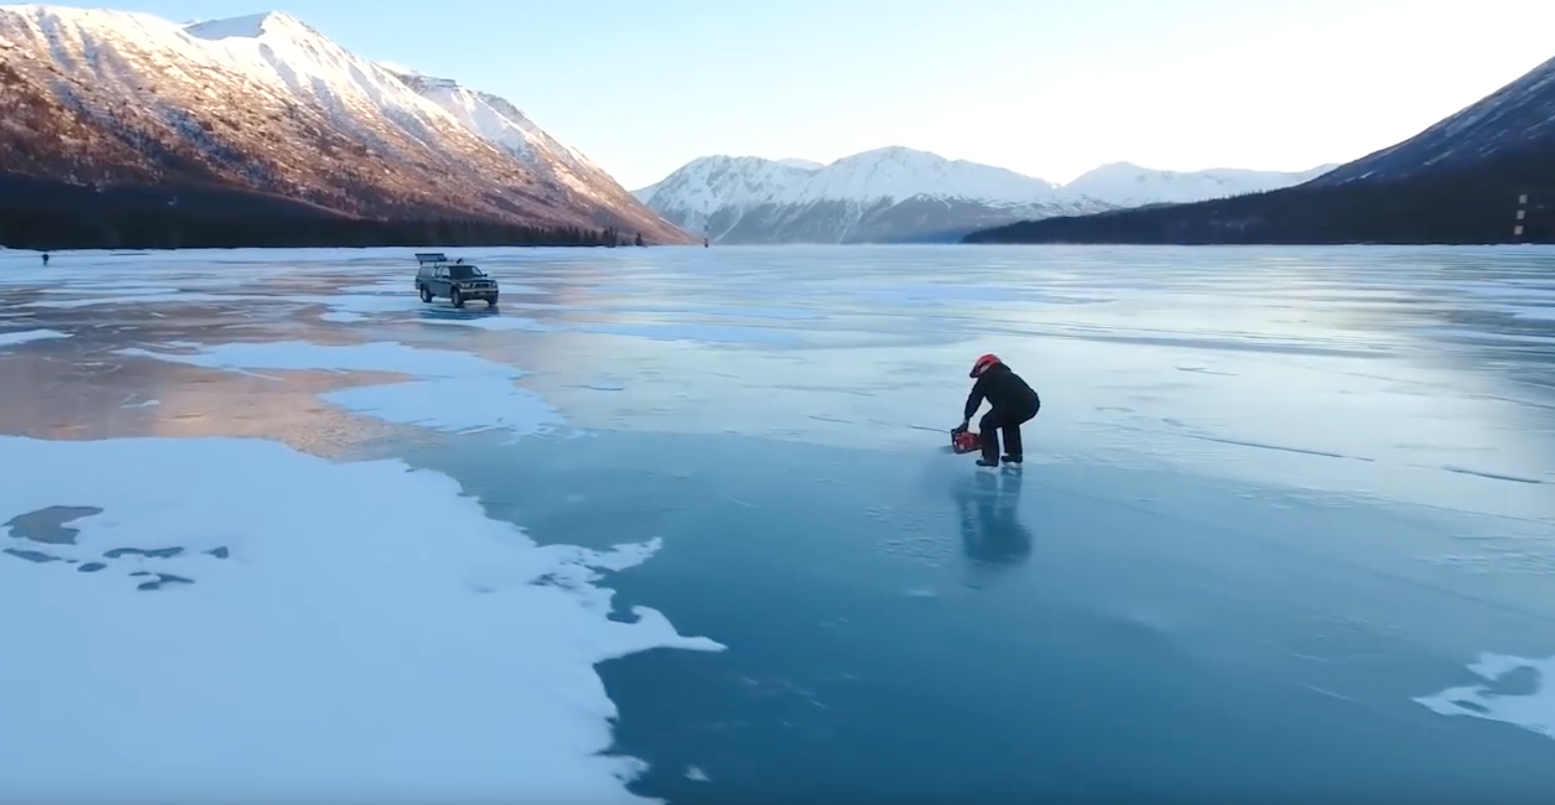 How To Get Car Out Of Frozen Ice